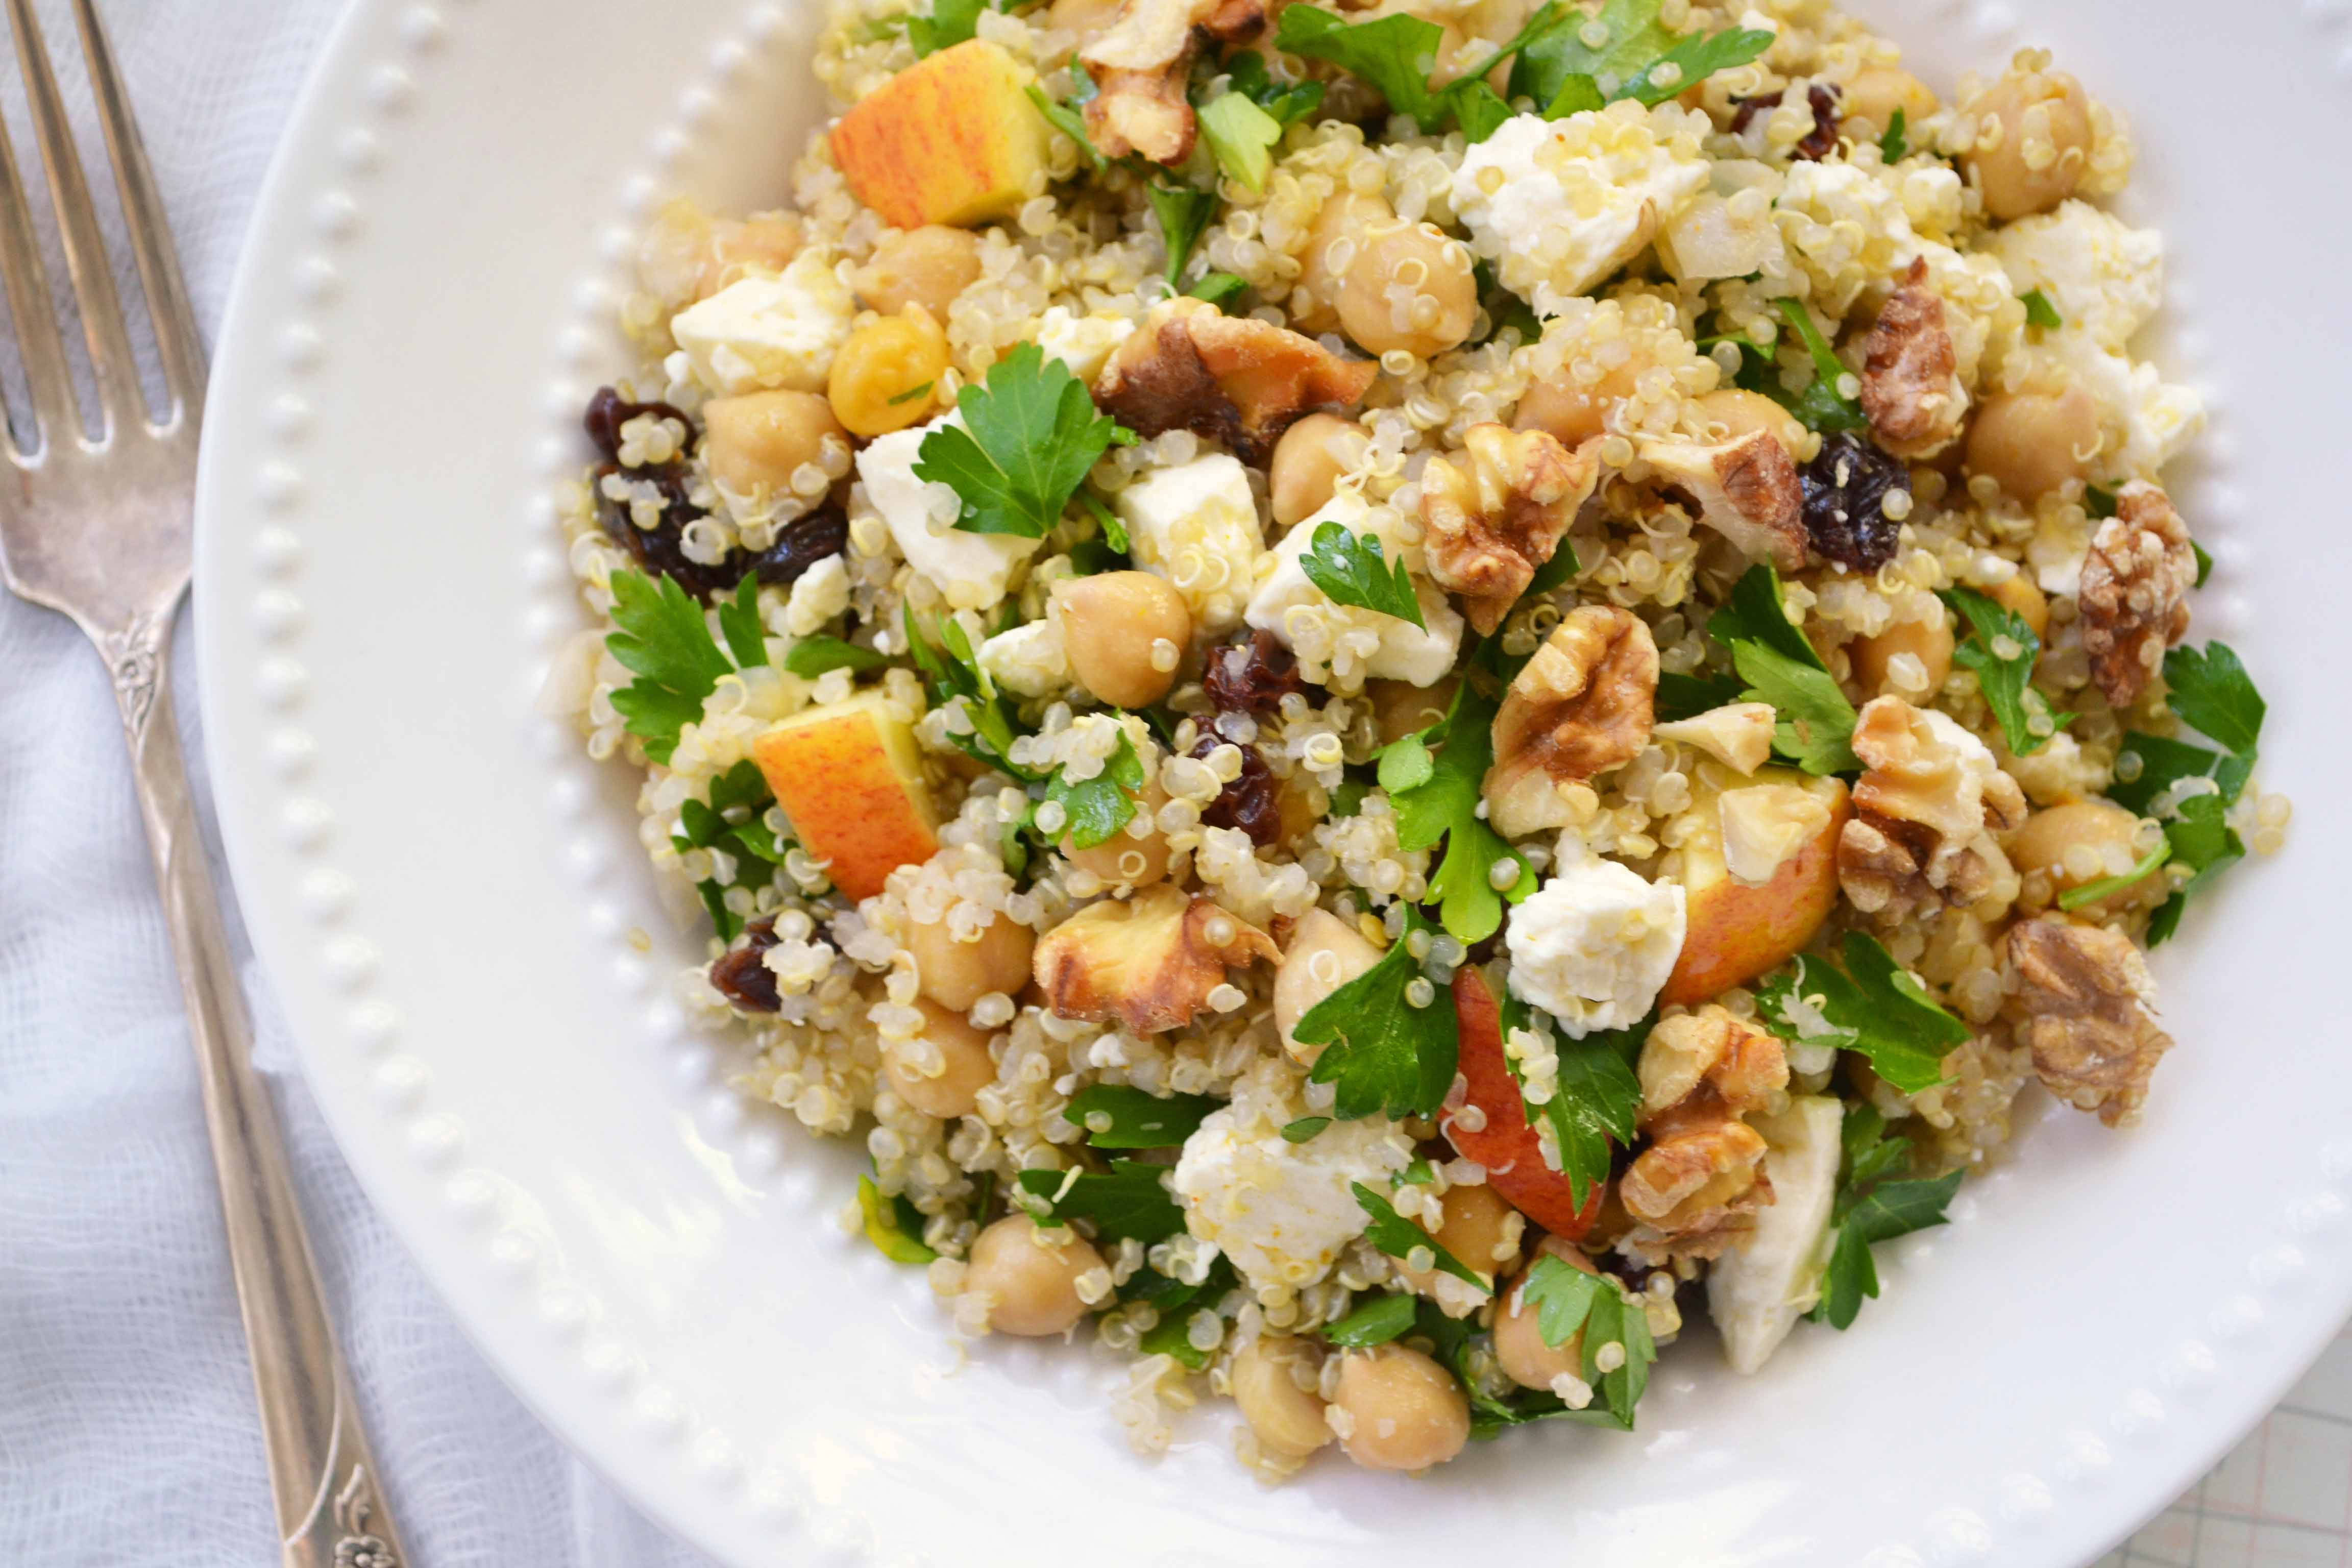 Quinoa Salad Recipes  Quinoa Salad with Chickpeas Feta and Apples Dinner With